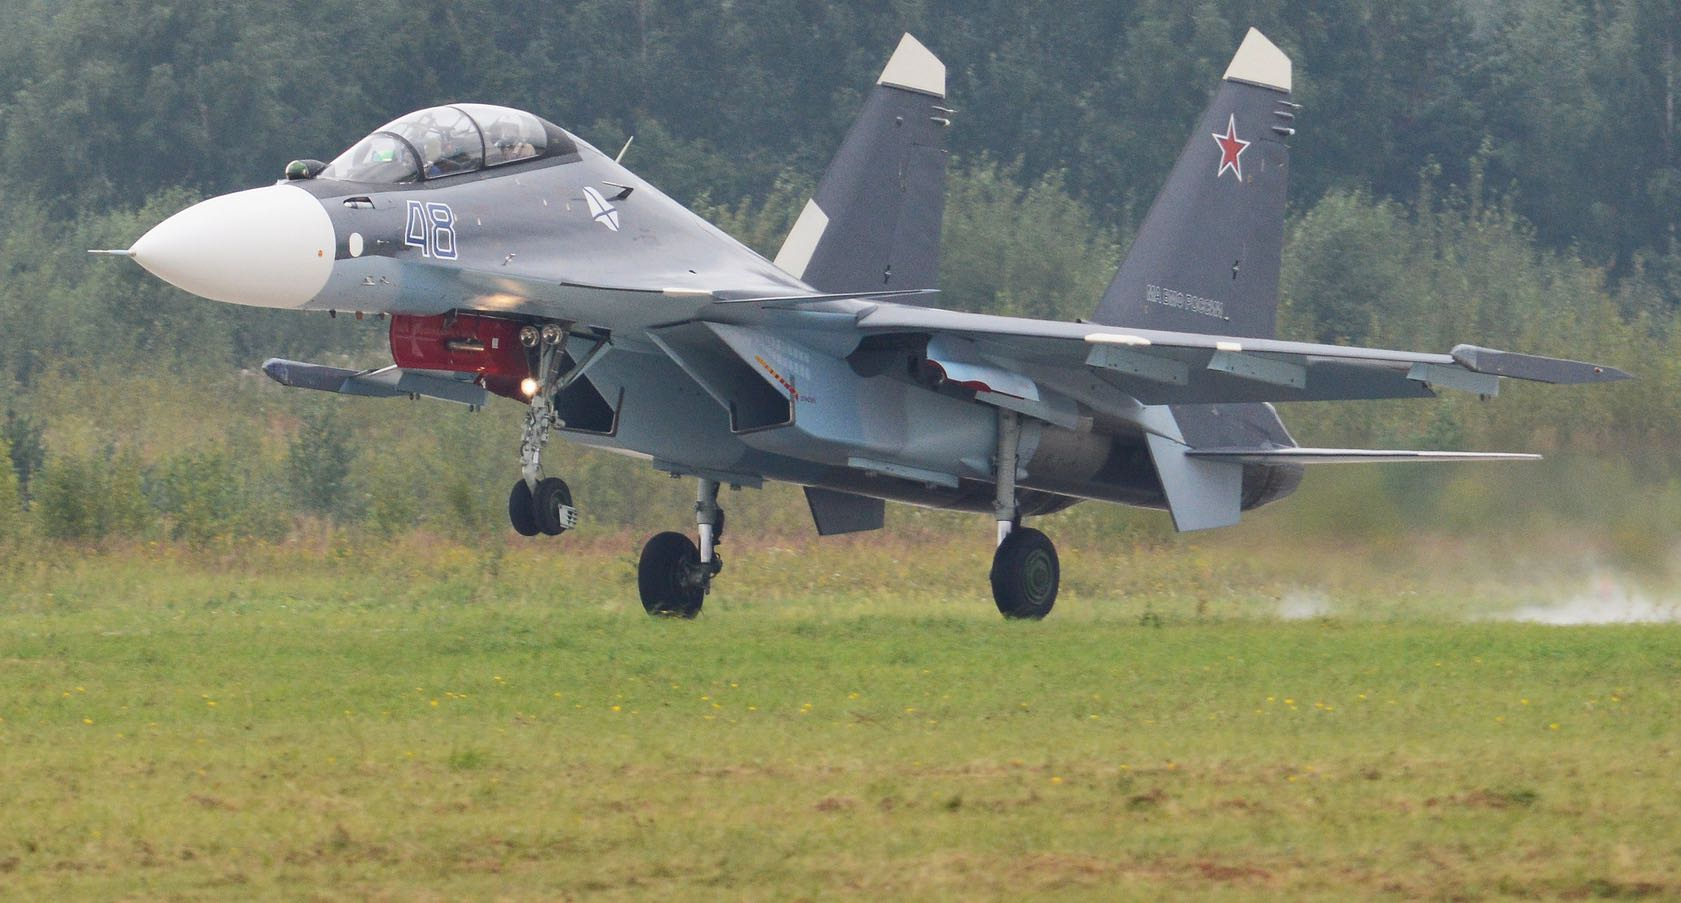 SU-30SM: Russia has struck a $400 million deal to sell military jets to Myanmar (Photo: Alan Wilson/Flickr)